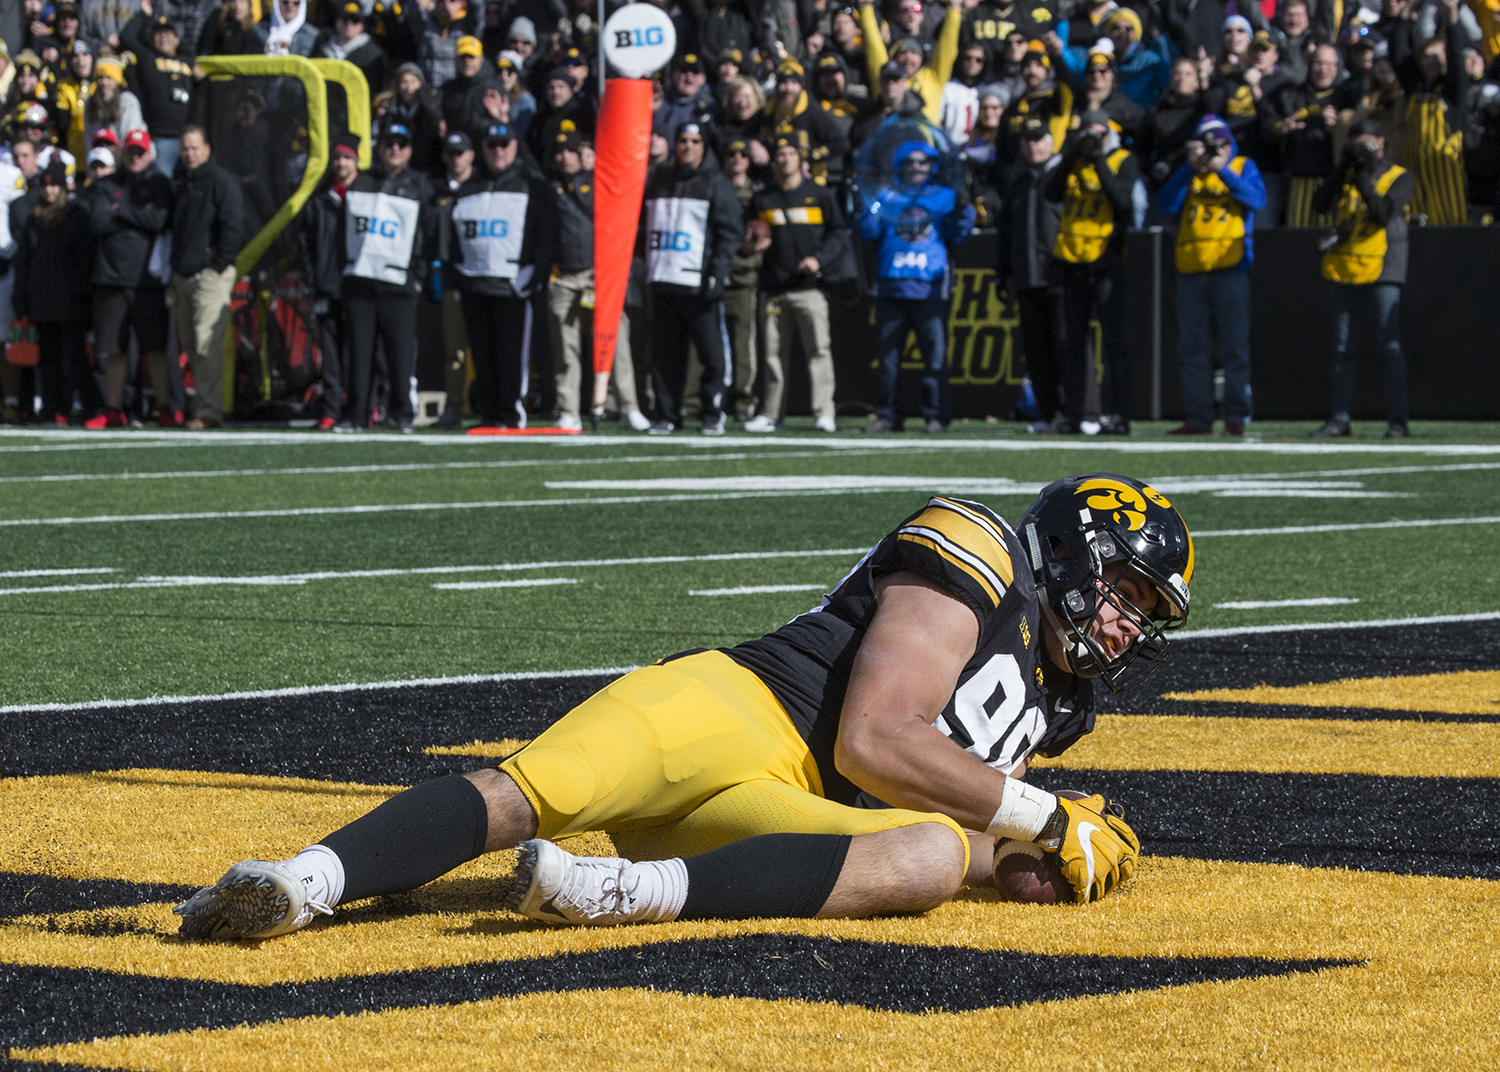 Anthony Nelson recovers a fumble and scores a touchdown during the Iowa vs. Maryland game at Kinnick stadium on Saturday Oct. 20, 2018. The Hawkeyes defeated the Terrapins, 23-0.